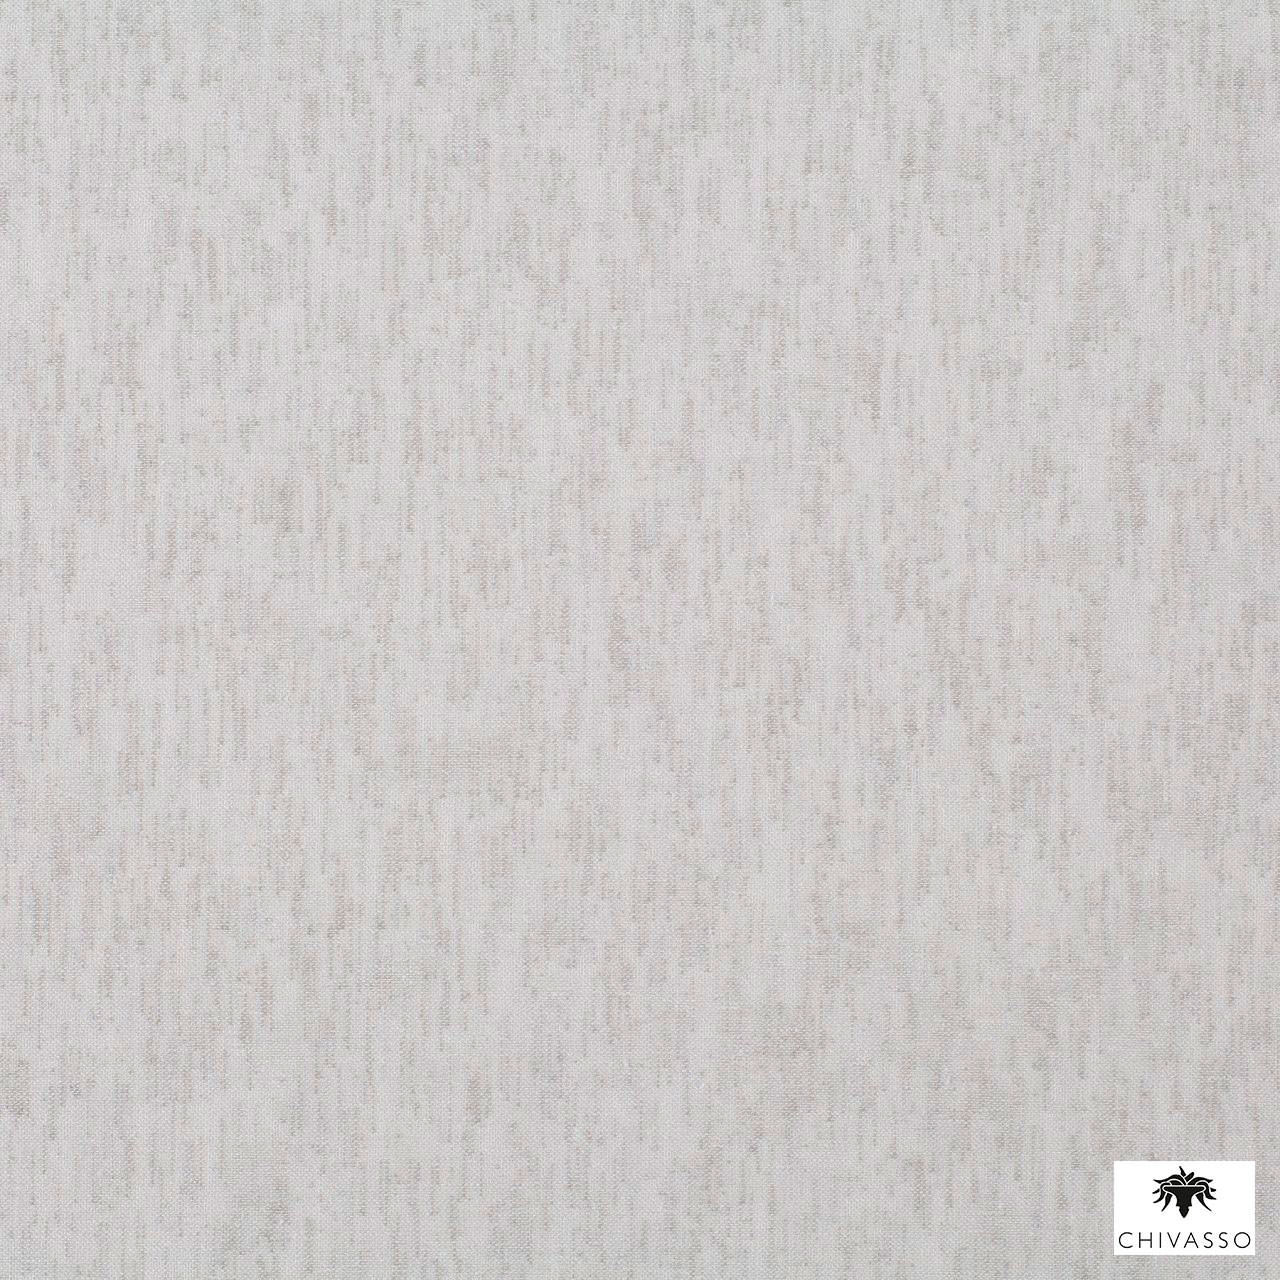 Chivasso - Stazzano - Ce5116-091  | Curtain Fabric - Beige, Plain, Synthetic, Domestic Use, Railroaded, Wide Width